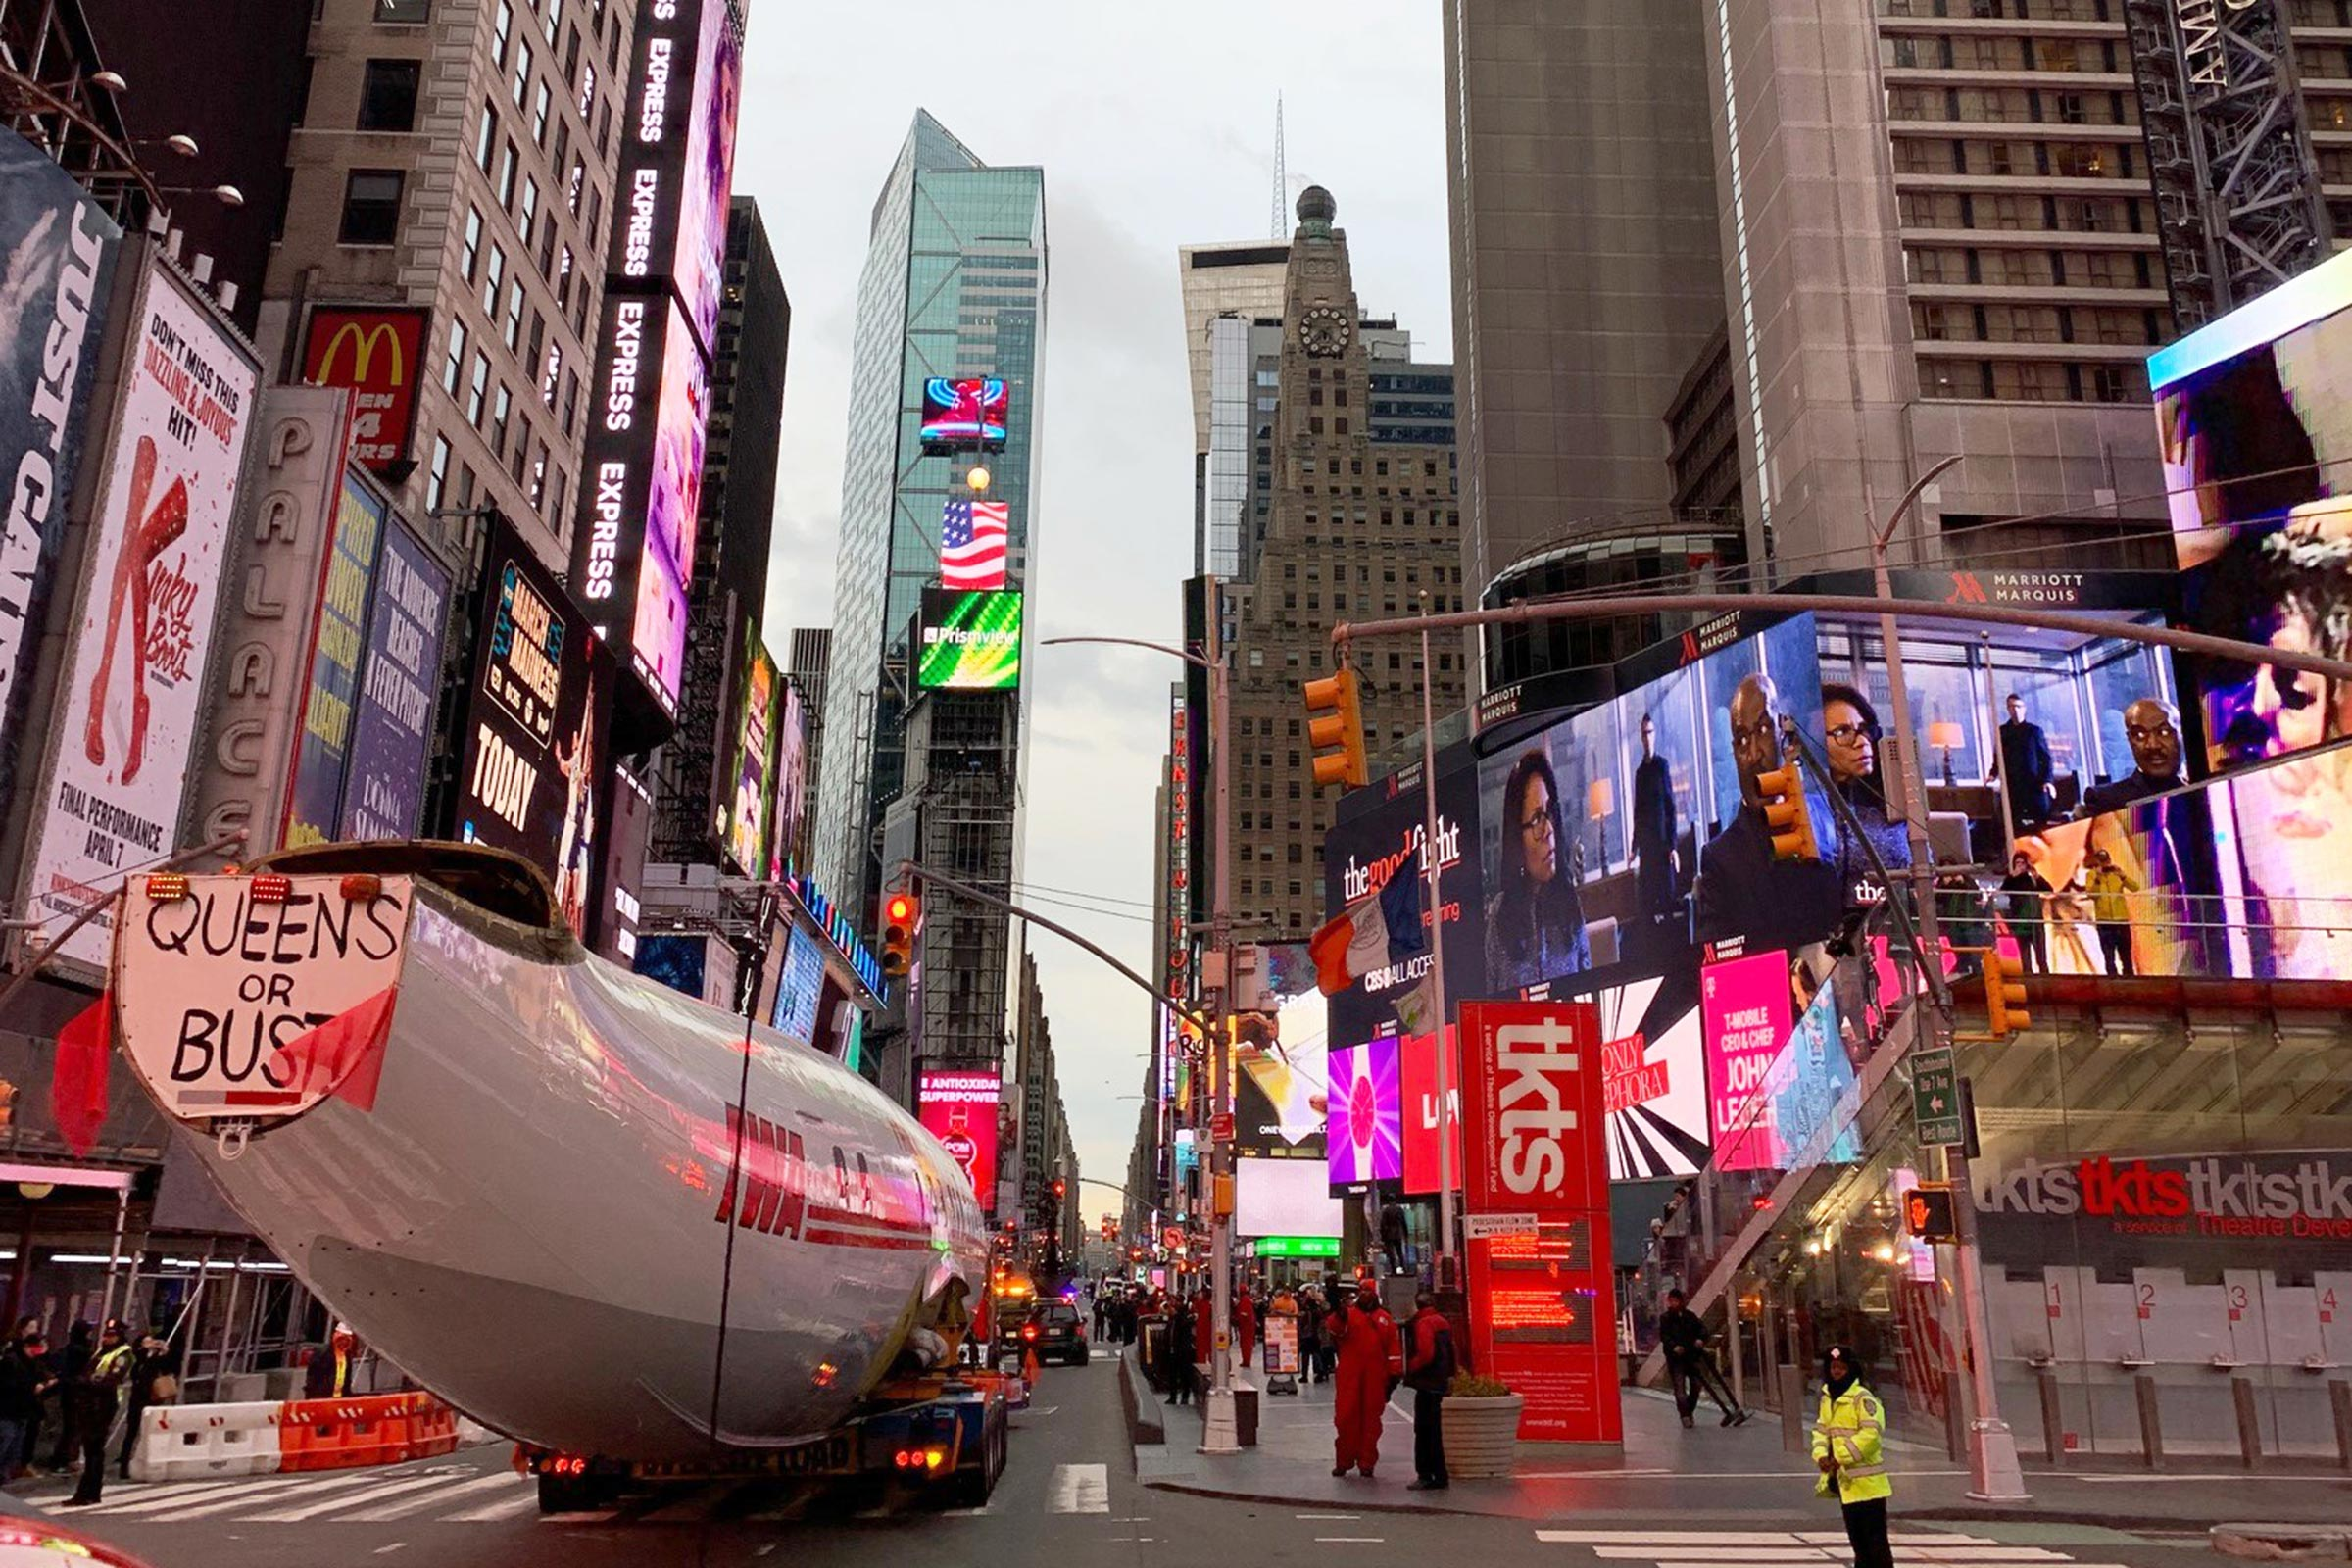 Connie's 220-foot-long billboard lit up Times Square for five minutes on March 23, 2019.